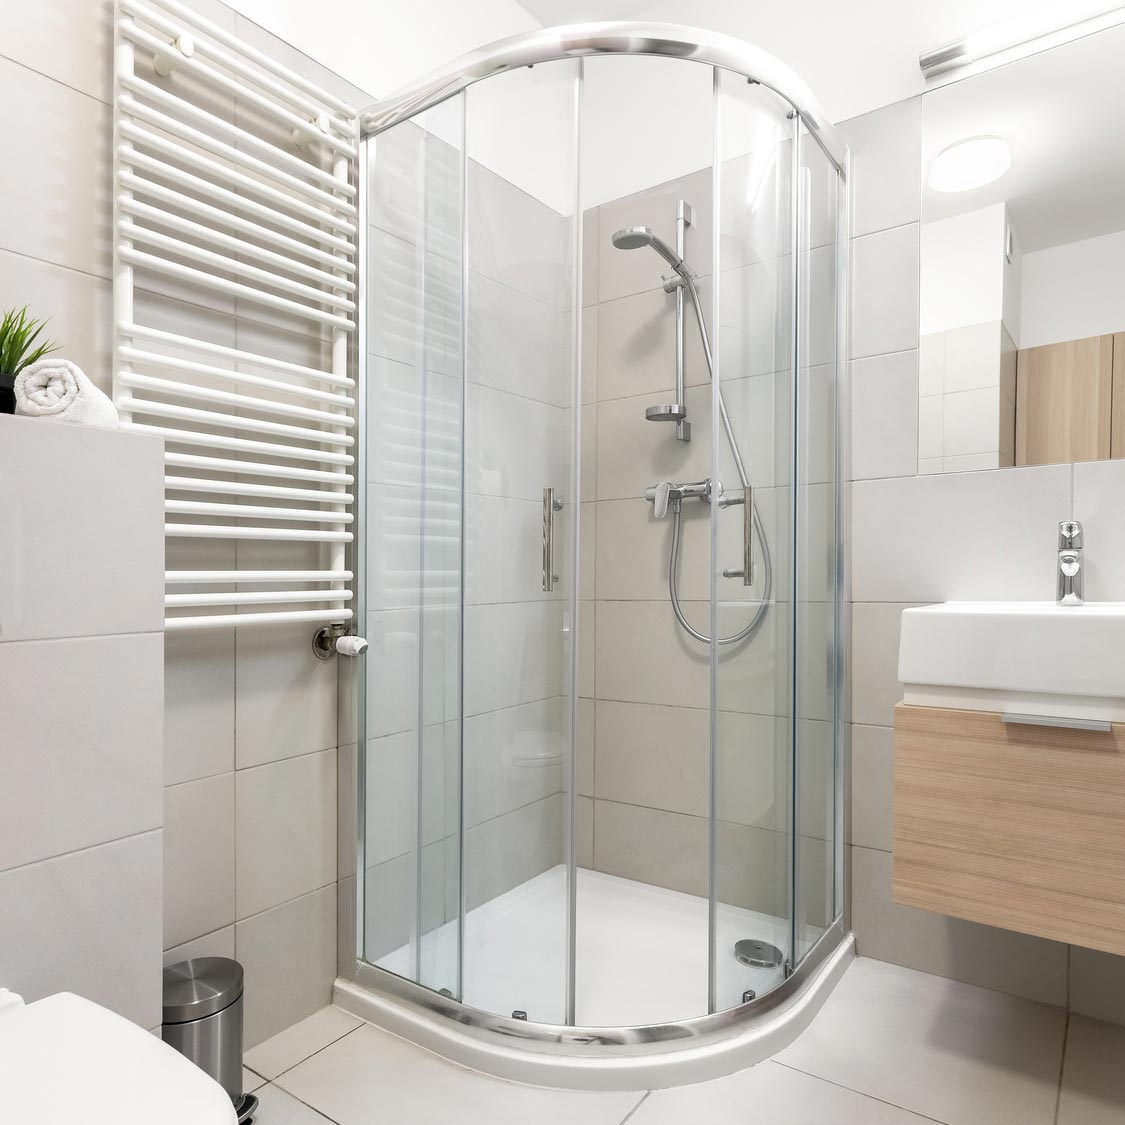 Shower Cubicles for Sale: Our Top 5 Styles in 2018